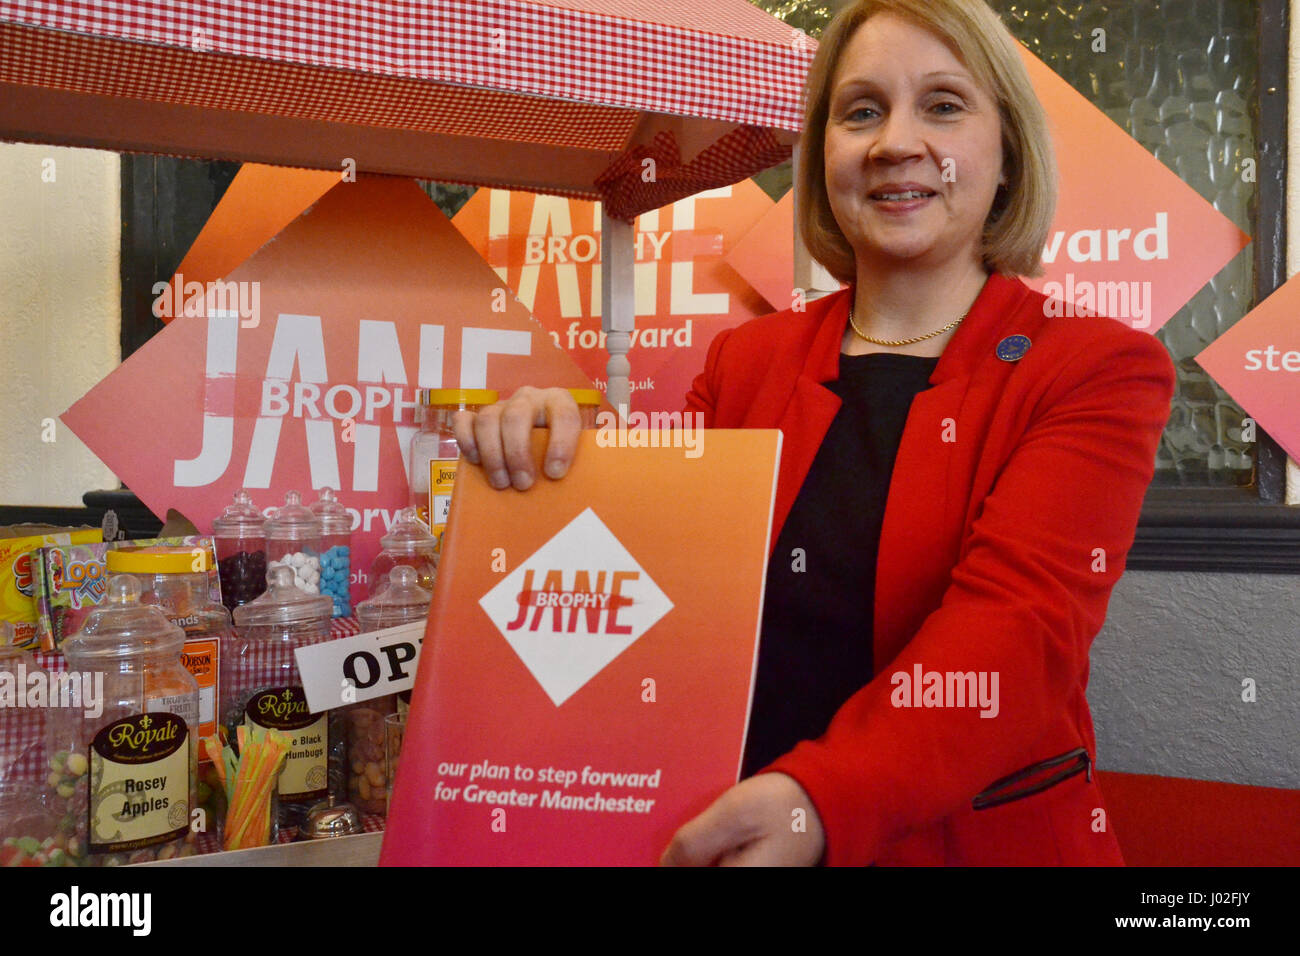 Manchester, UK. 8th April, 2017. Jane Brophy (Liberal Democrat candidate for Greater Manchester Mayor) launches - Stock Image